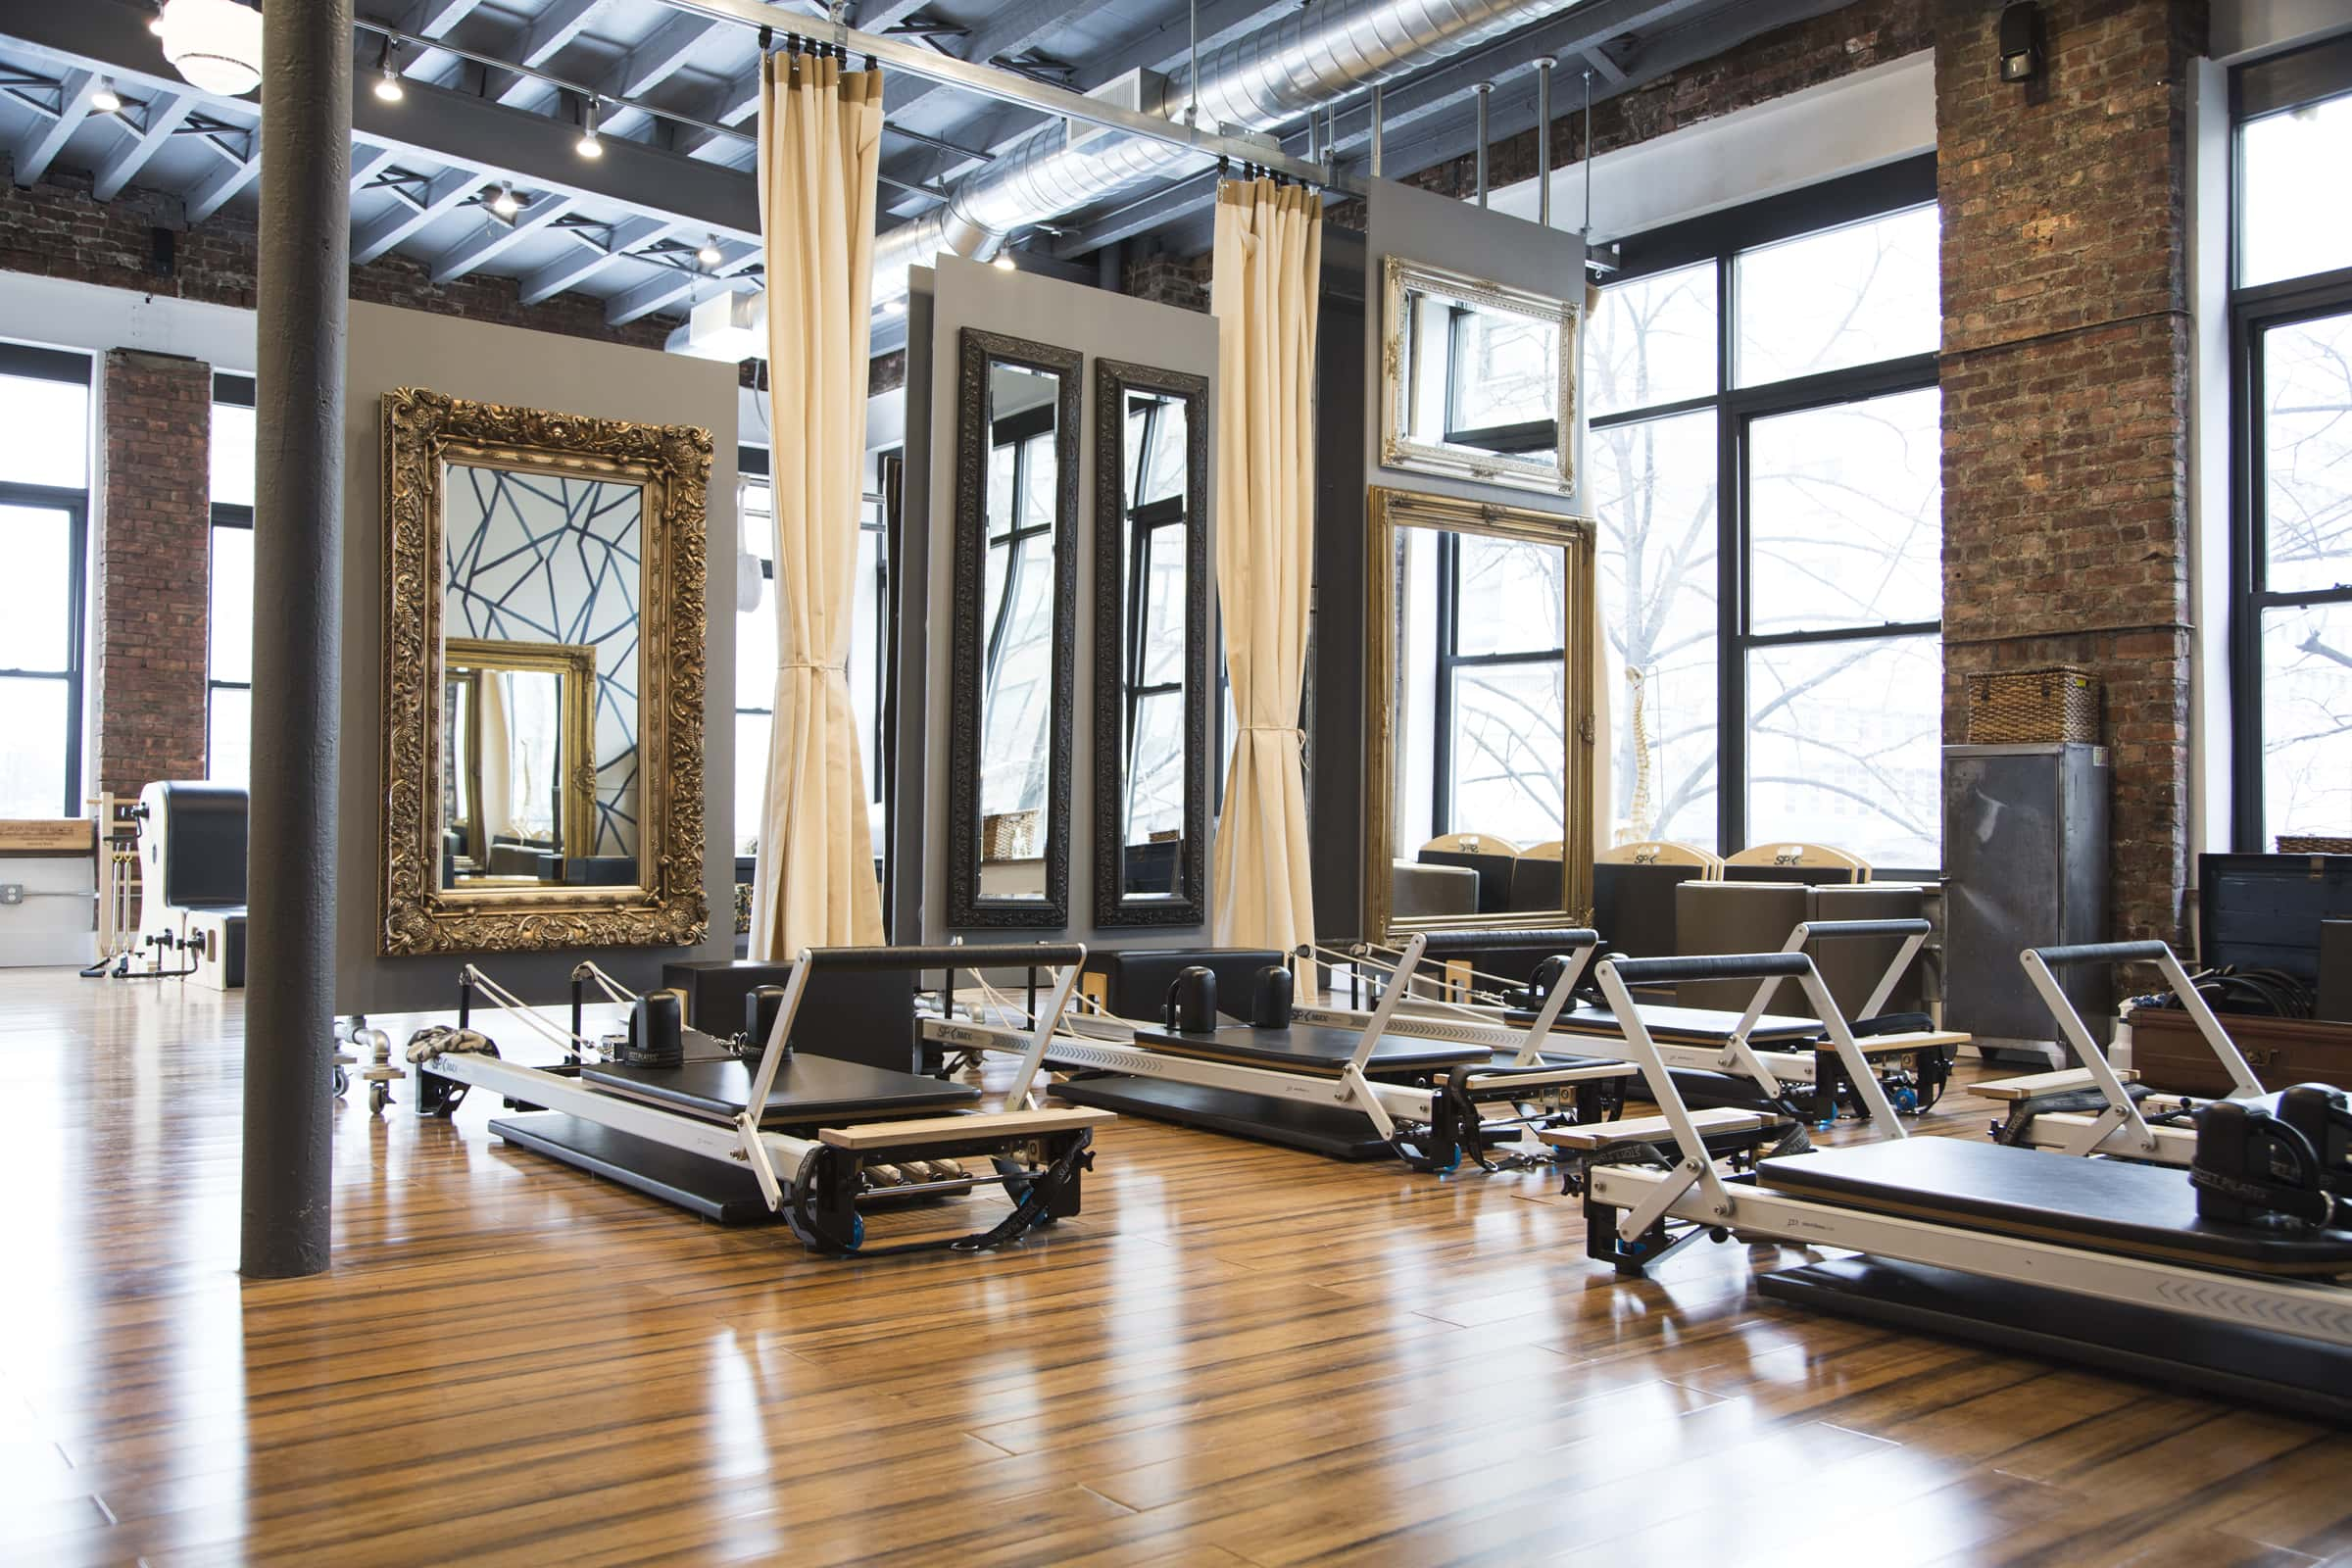 Physio Logic Pilates Studio Brooklyn, New York | Physio Logic Pilates Studio Brooklyn Heights, Brooklyn, NY | https://physiologicnyc.com/pilates-movement/